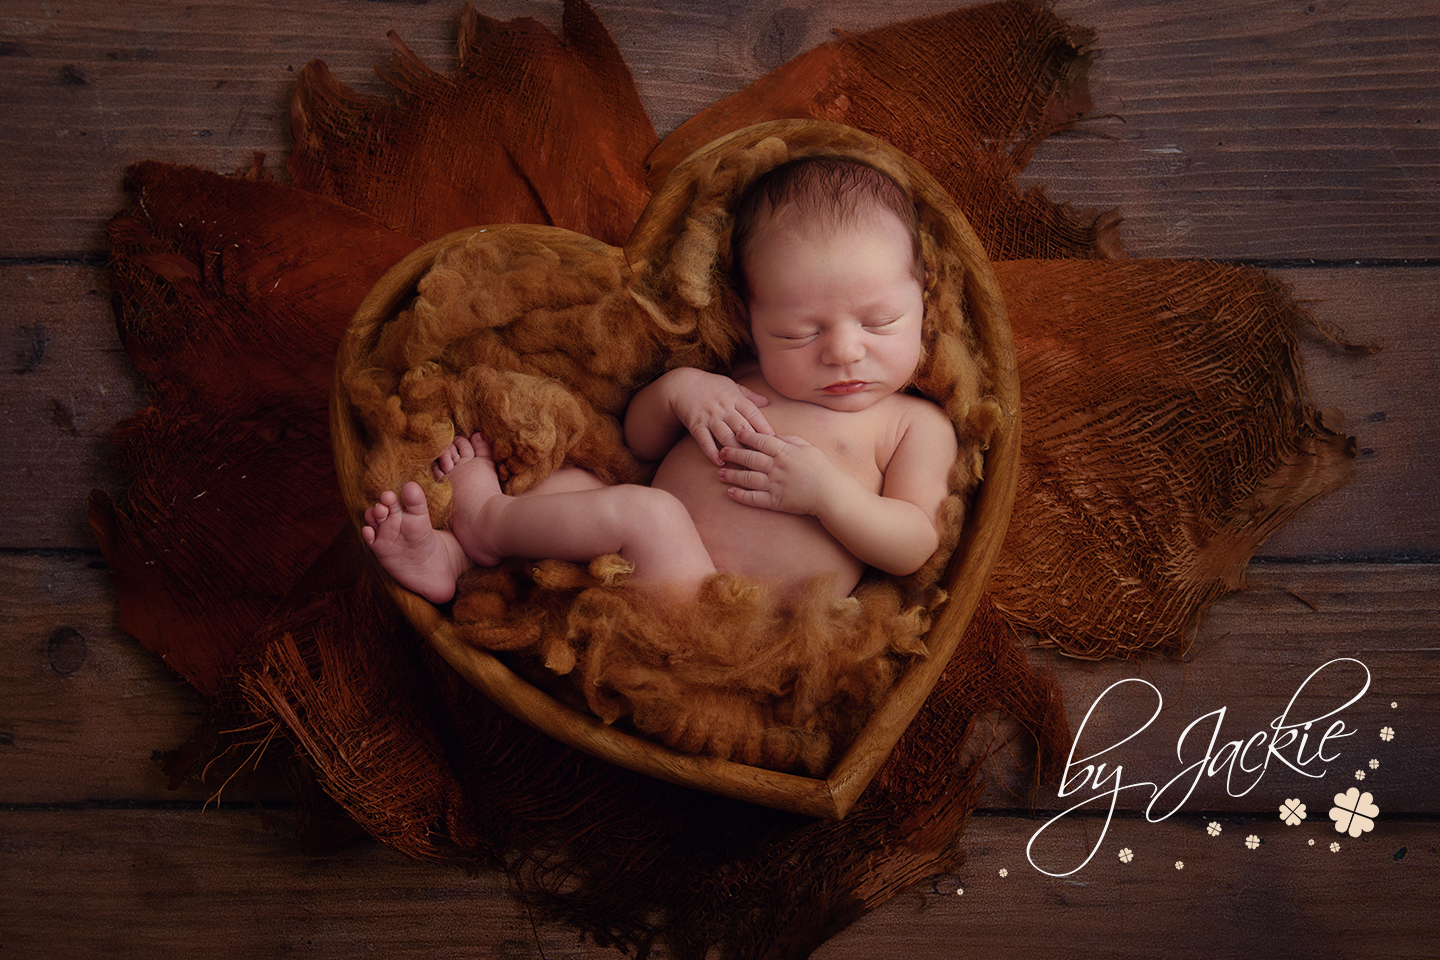 Newborn baby boy asleep in heart bowl by Babies By Jackie professional baby photographer in Market Weighton, York, North Yorkshire, UK